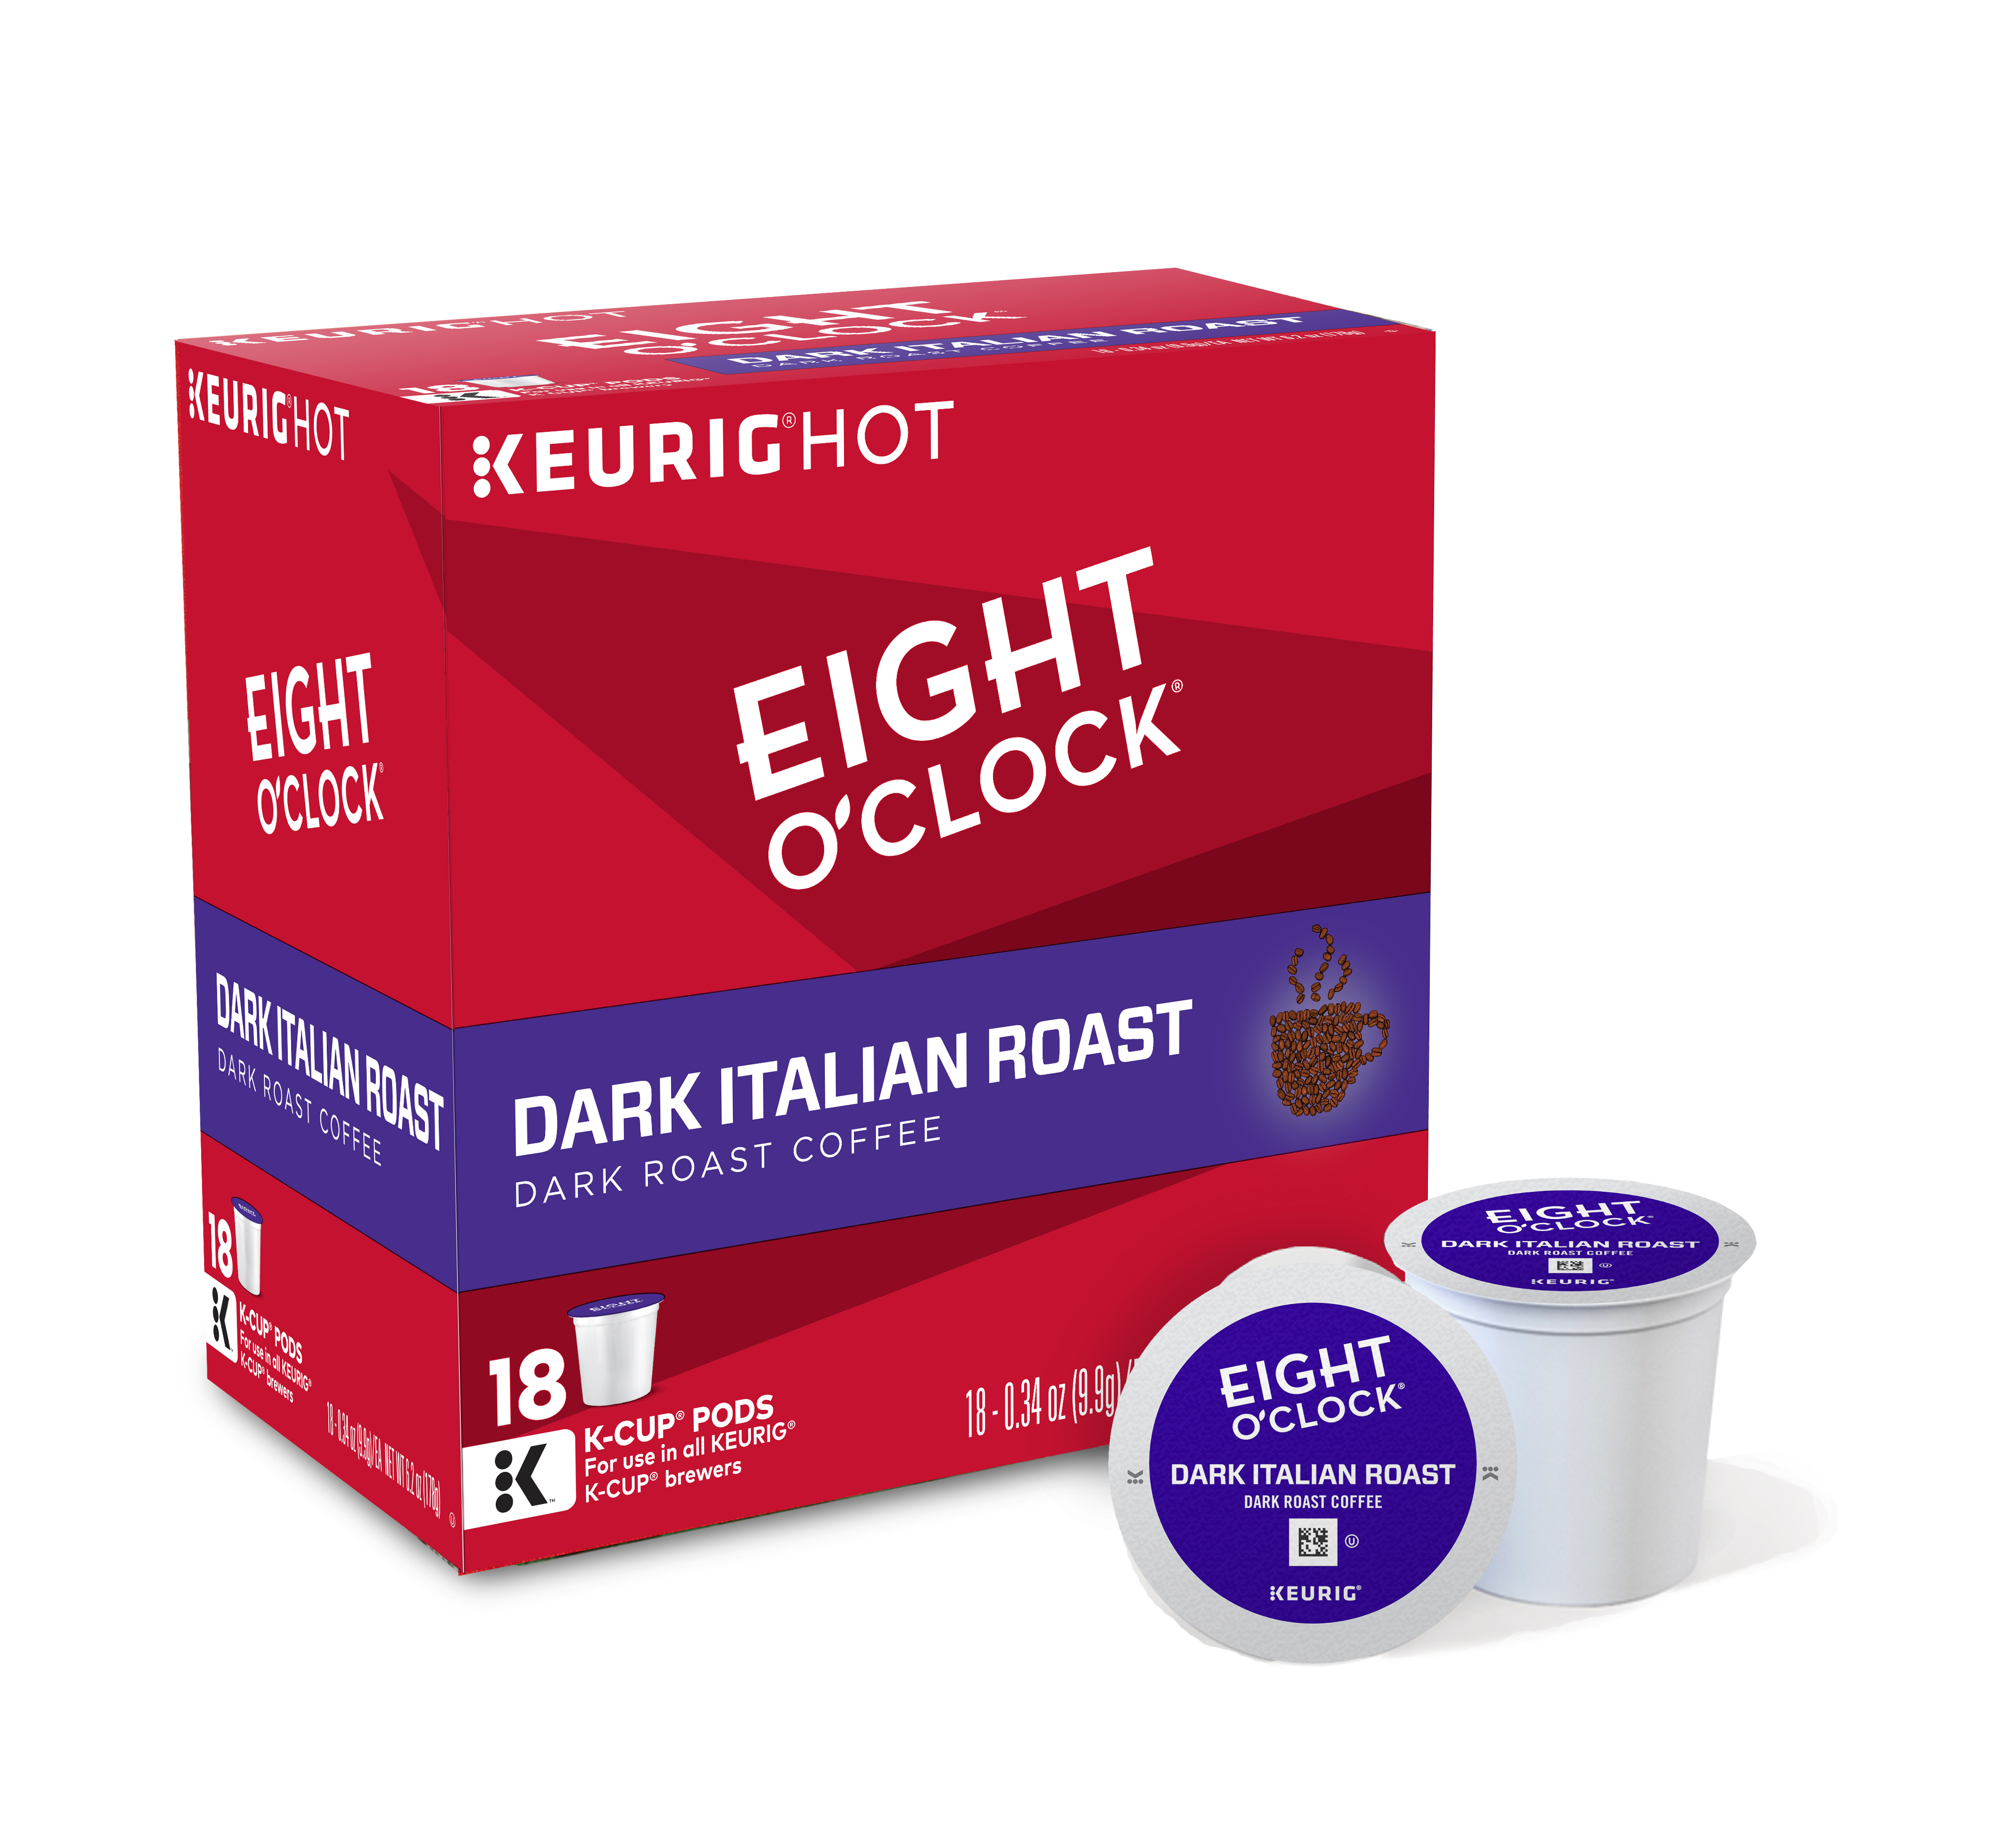 Eight O'Clock Coffee Dark Italian Roast Keurig Single-Serve K-Cup Pods, Dark Roast